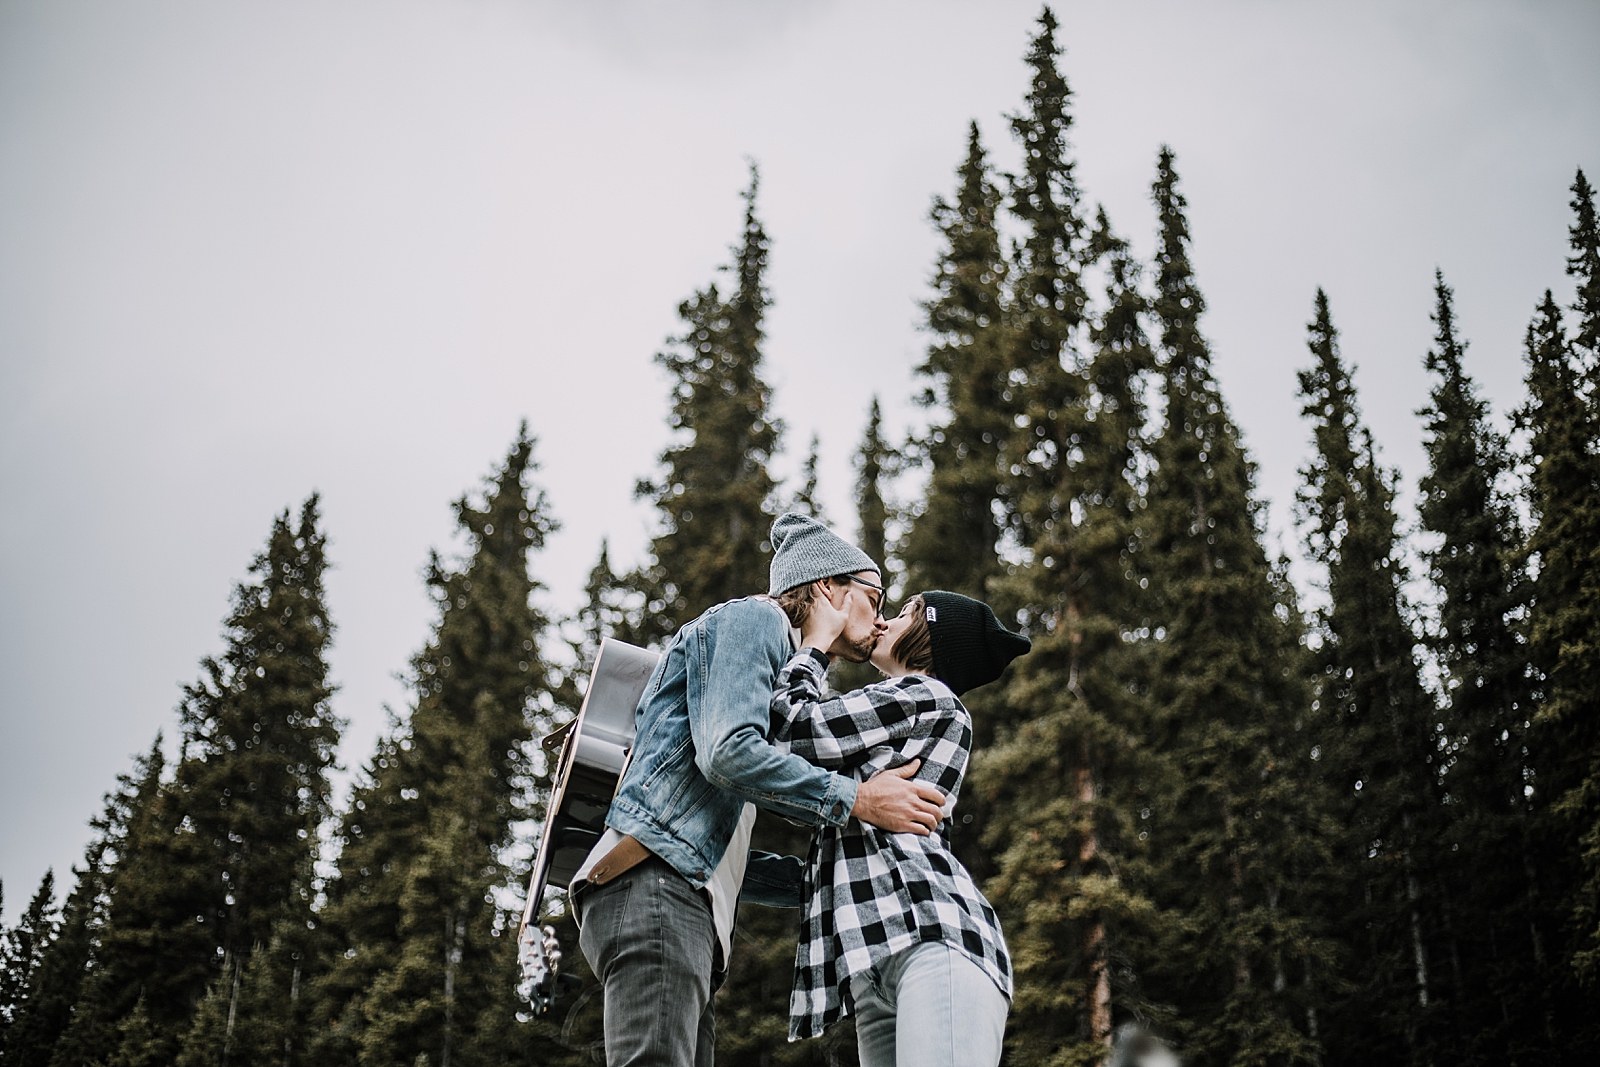 kissing on van, couple living out of a van, van life with dogs, hiking mayflower gulch, mayflower gulch elopement, mayflower gulch wedding, colorado 14er, colorado fourteener, leadville elopement